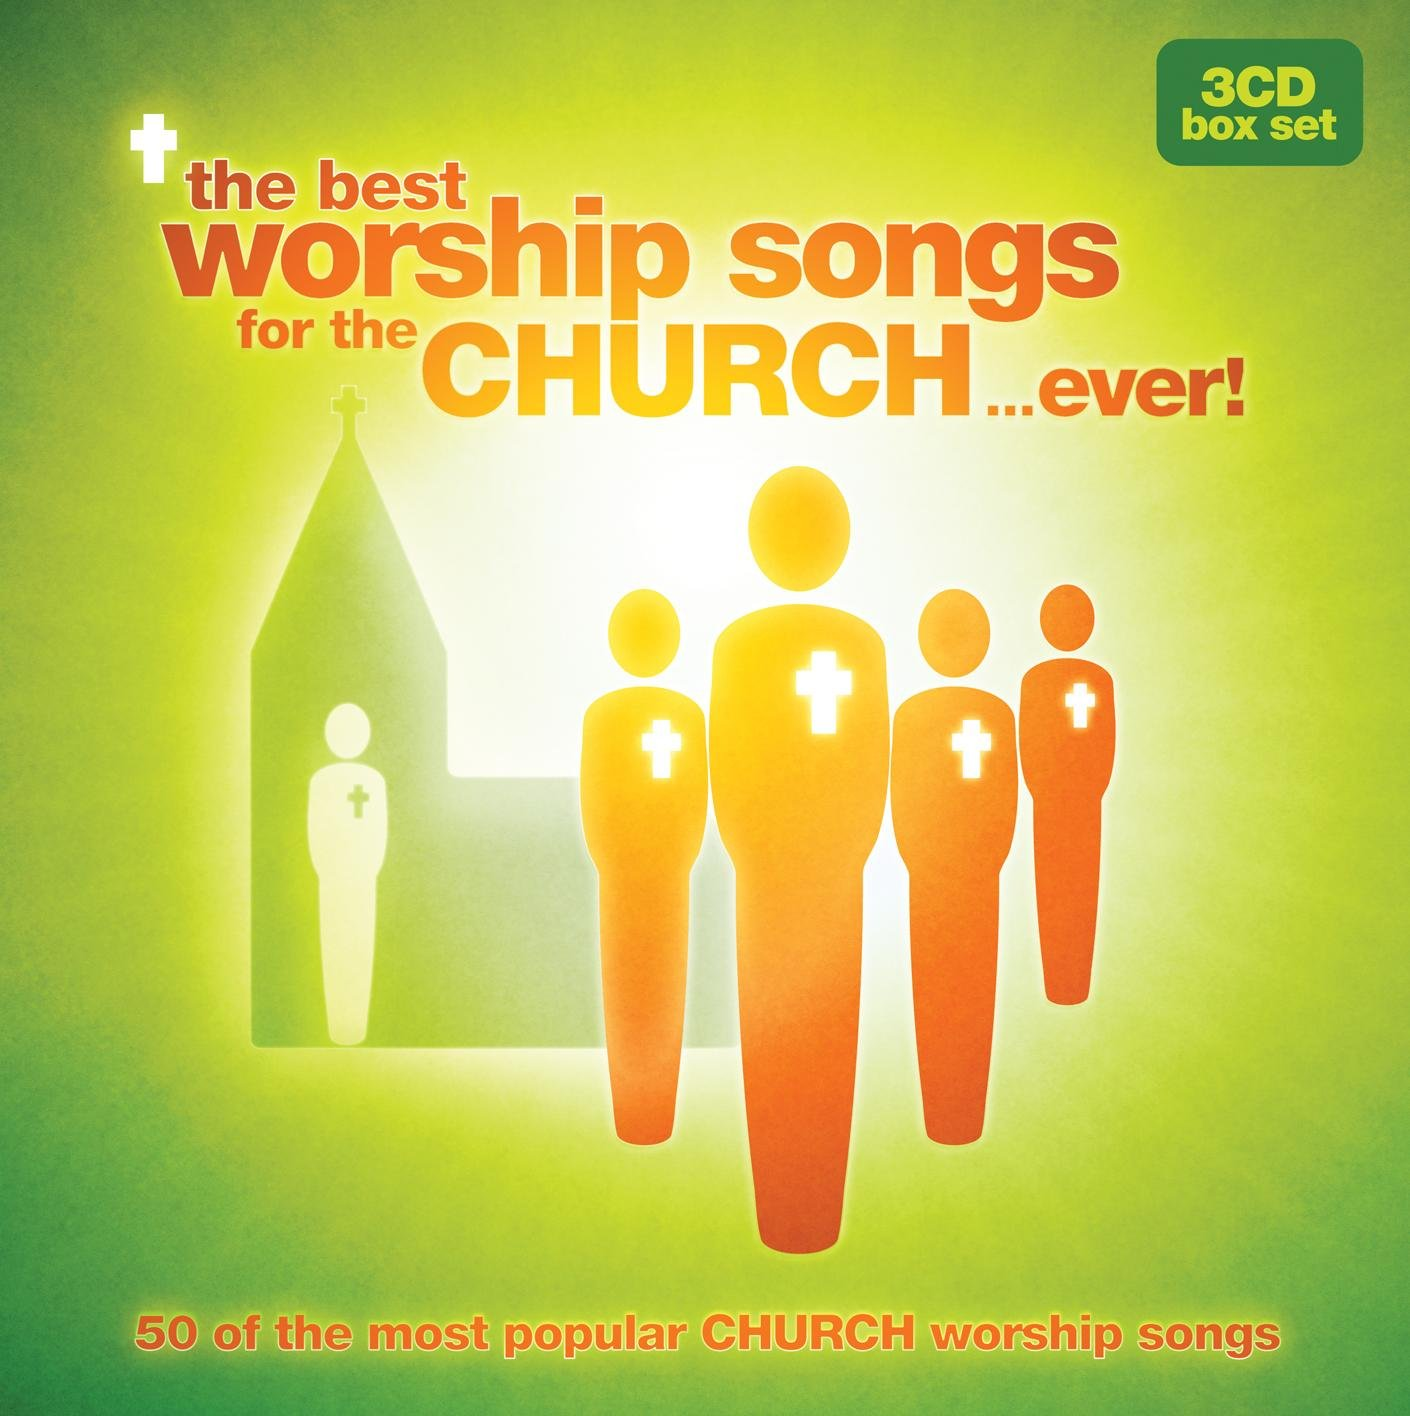 Most popular church songs of all time